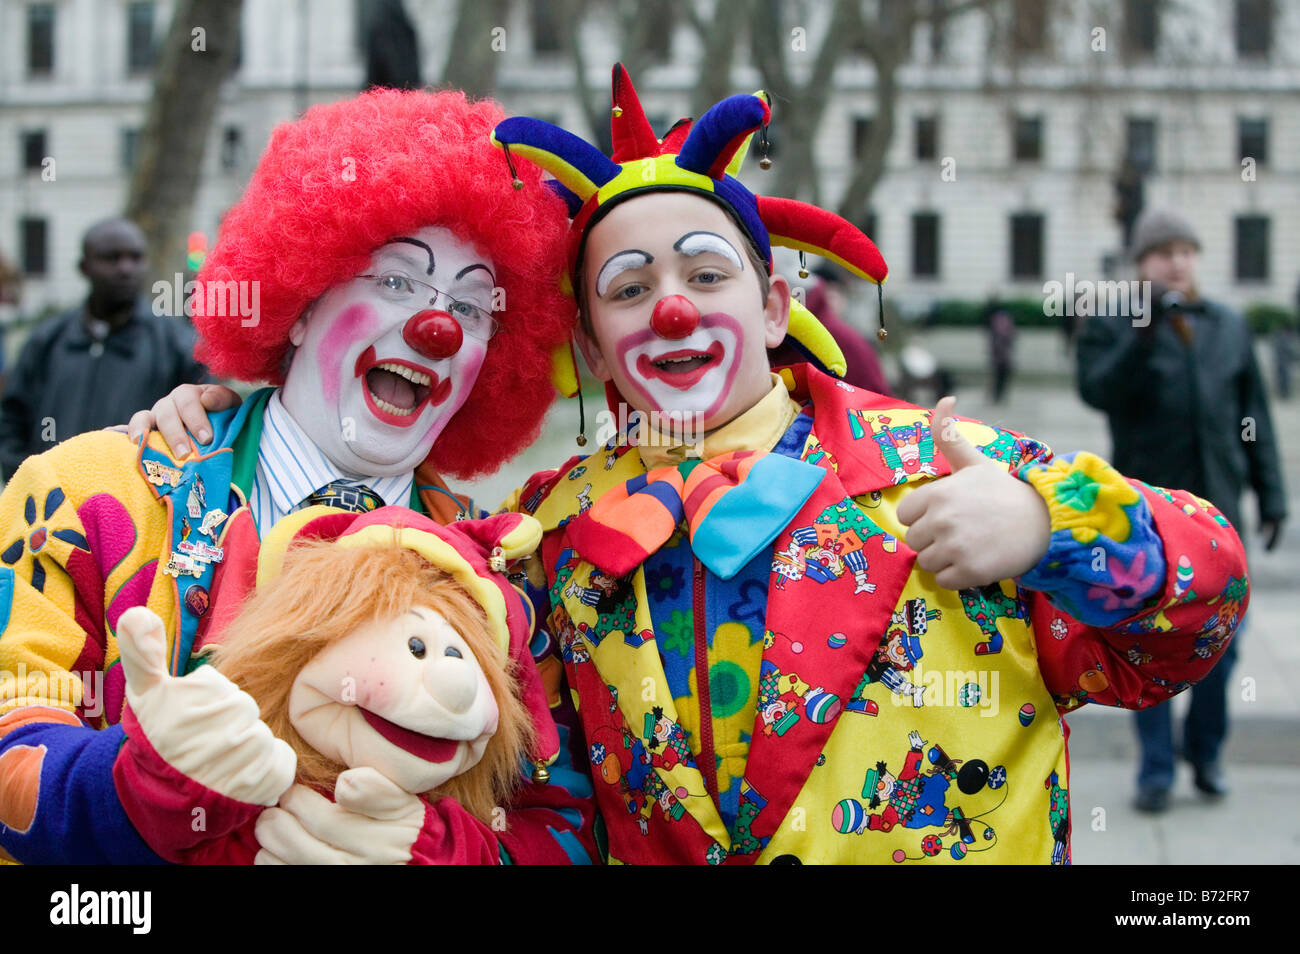 Colourful clowns at the London Parade, a New Year's Day Parade in Central London - Stock Image